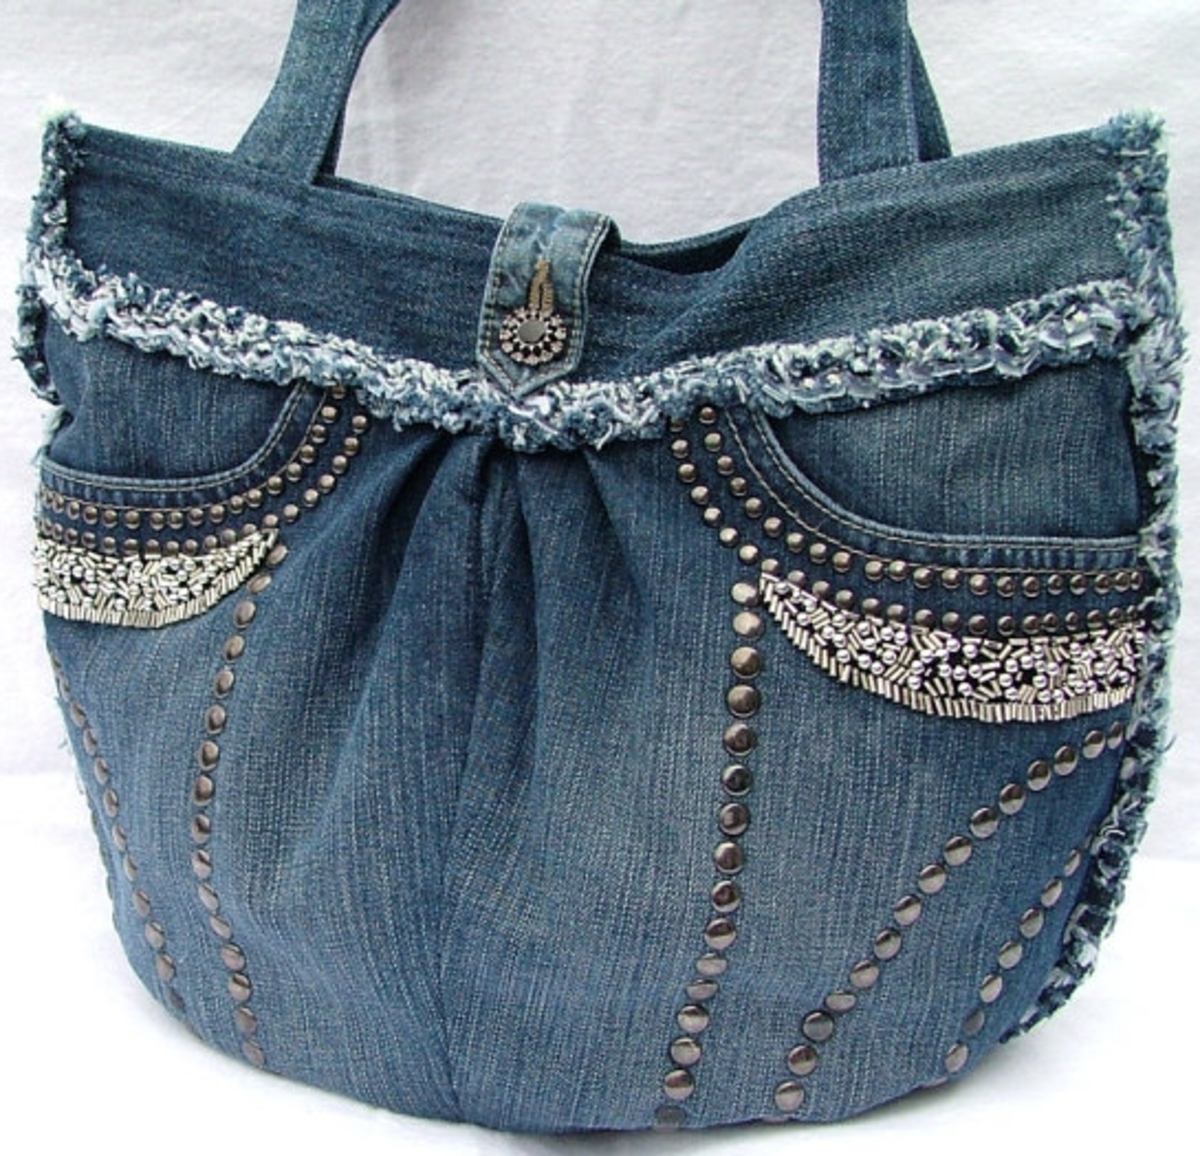 Repurpose Vintage Denim: Make a Purse